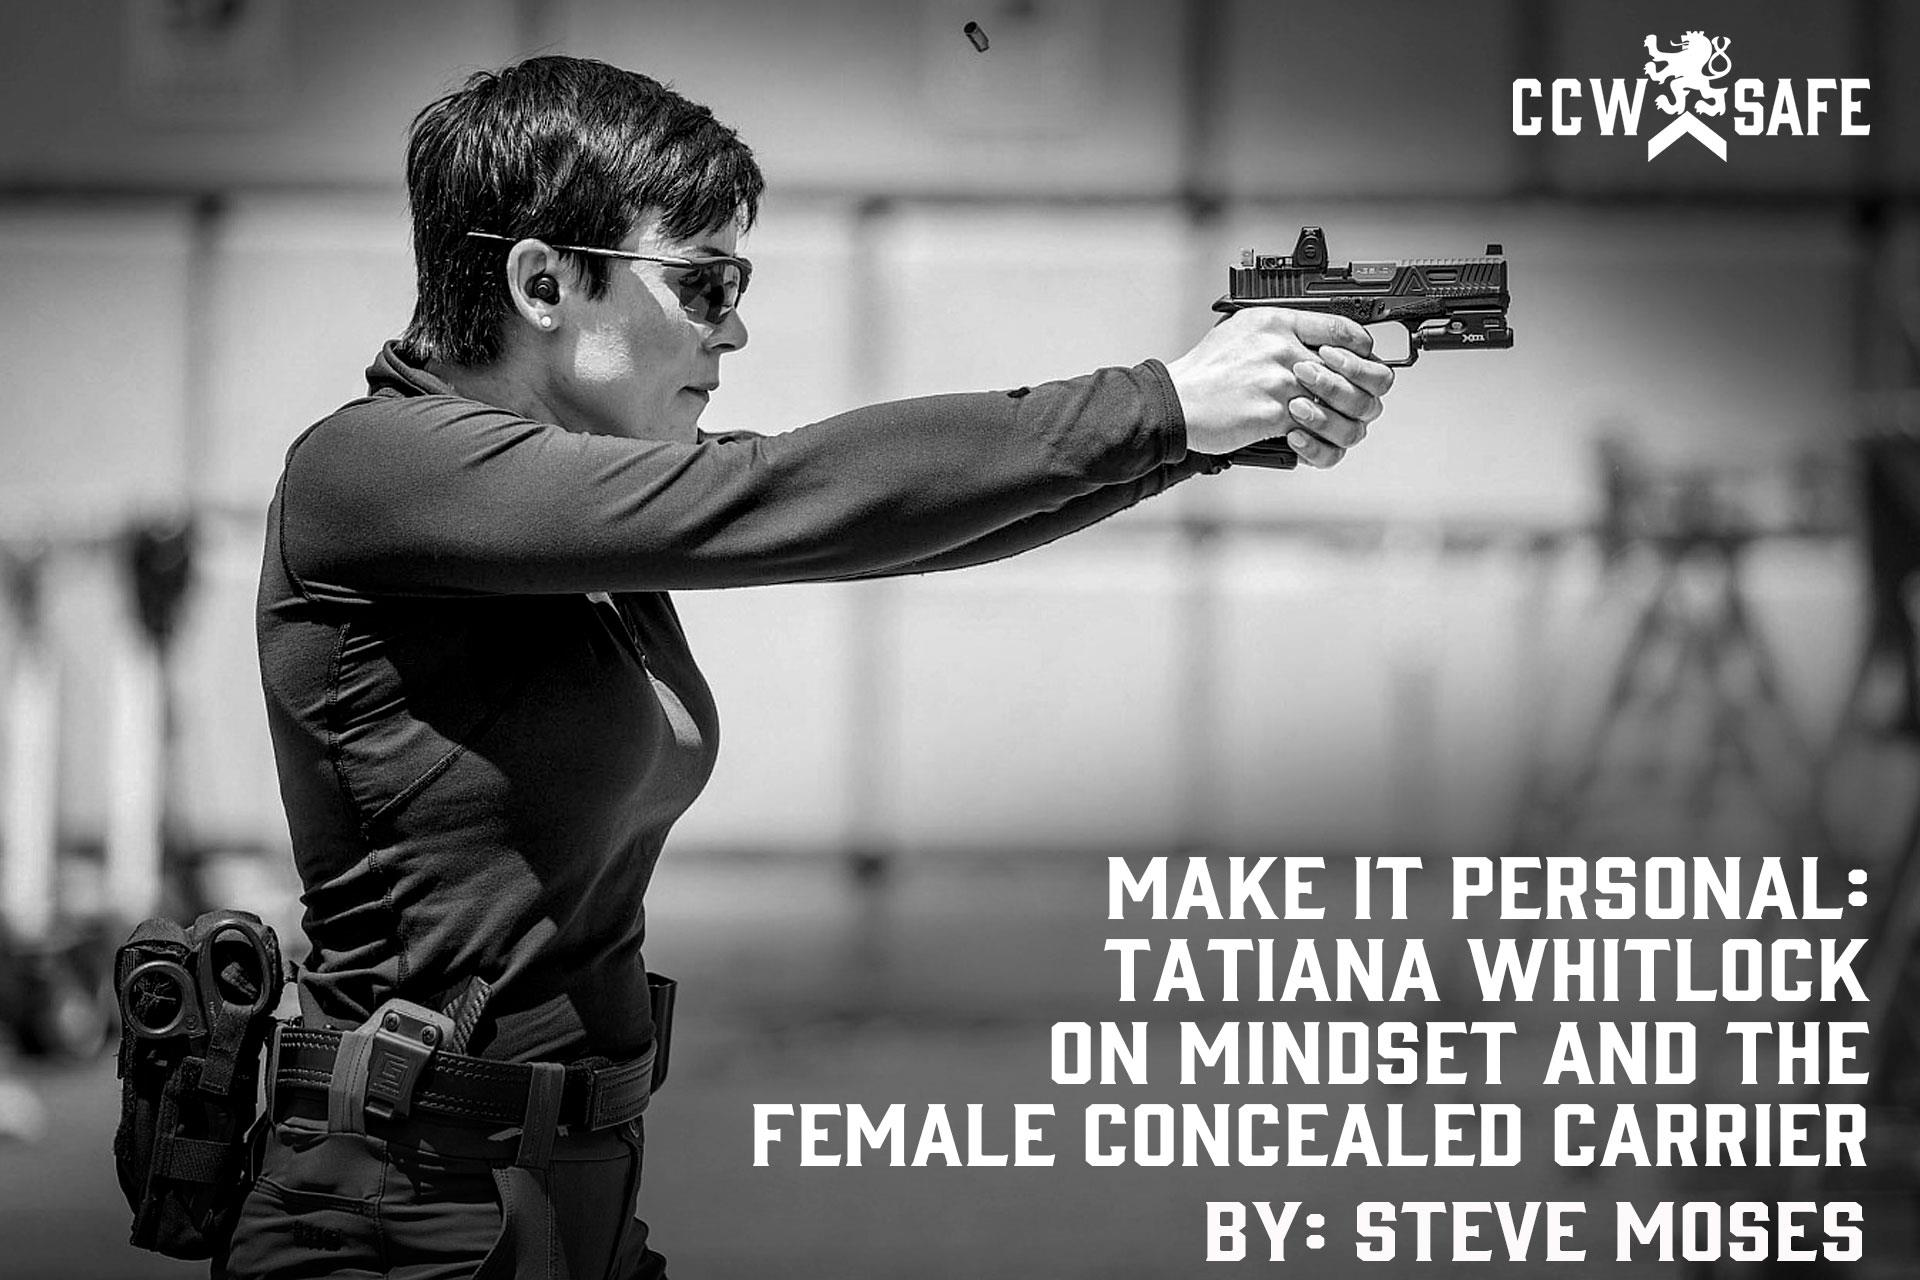 MAKE IT PERSONAL: TATIANA WHITLOCK ON MINDSET AND THE FEMALE CONCEALED CARRIER PT. 1